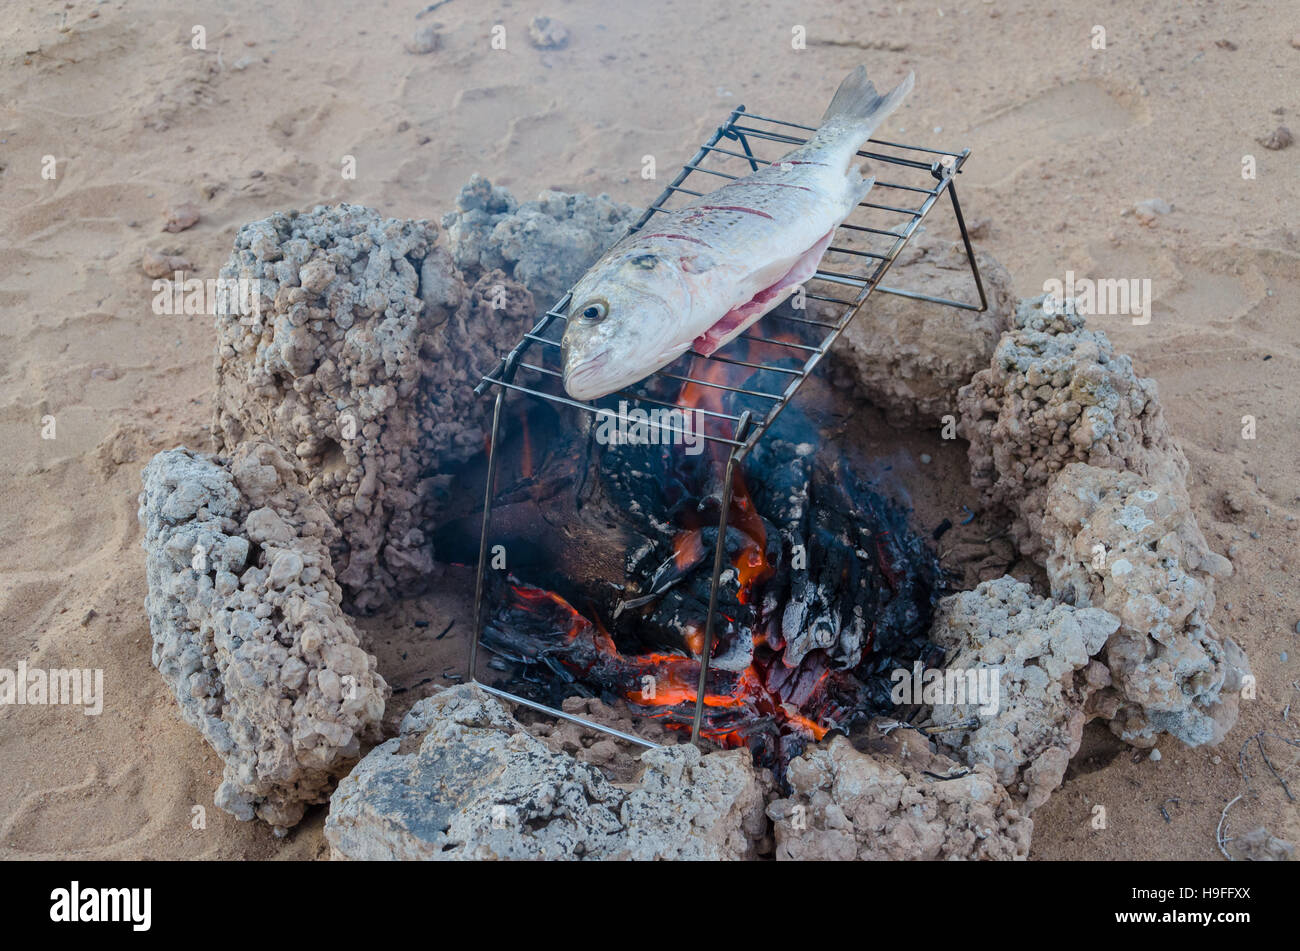 Freshly caught fish being grilled over open campfire out in the desert - Stock Image